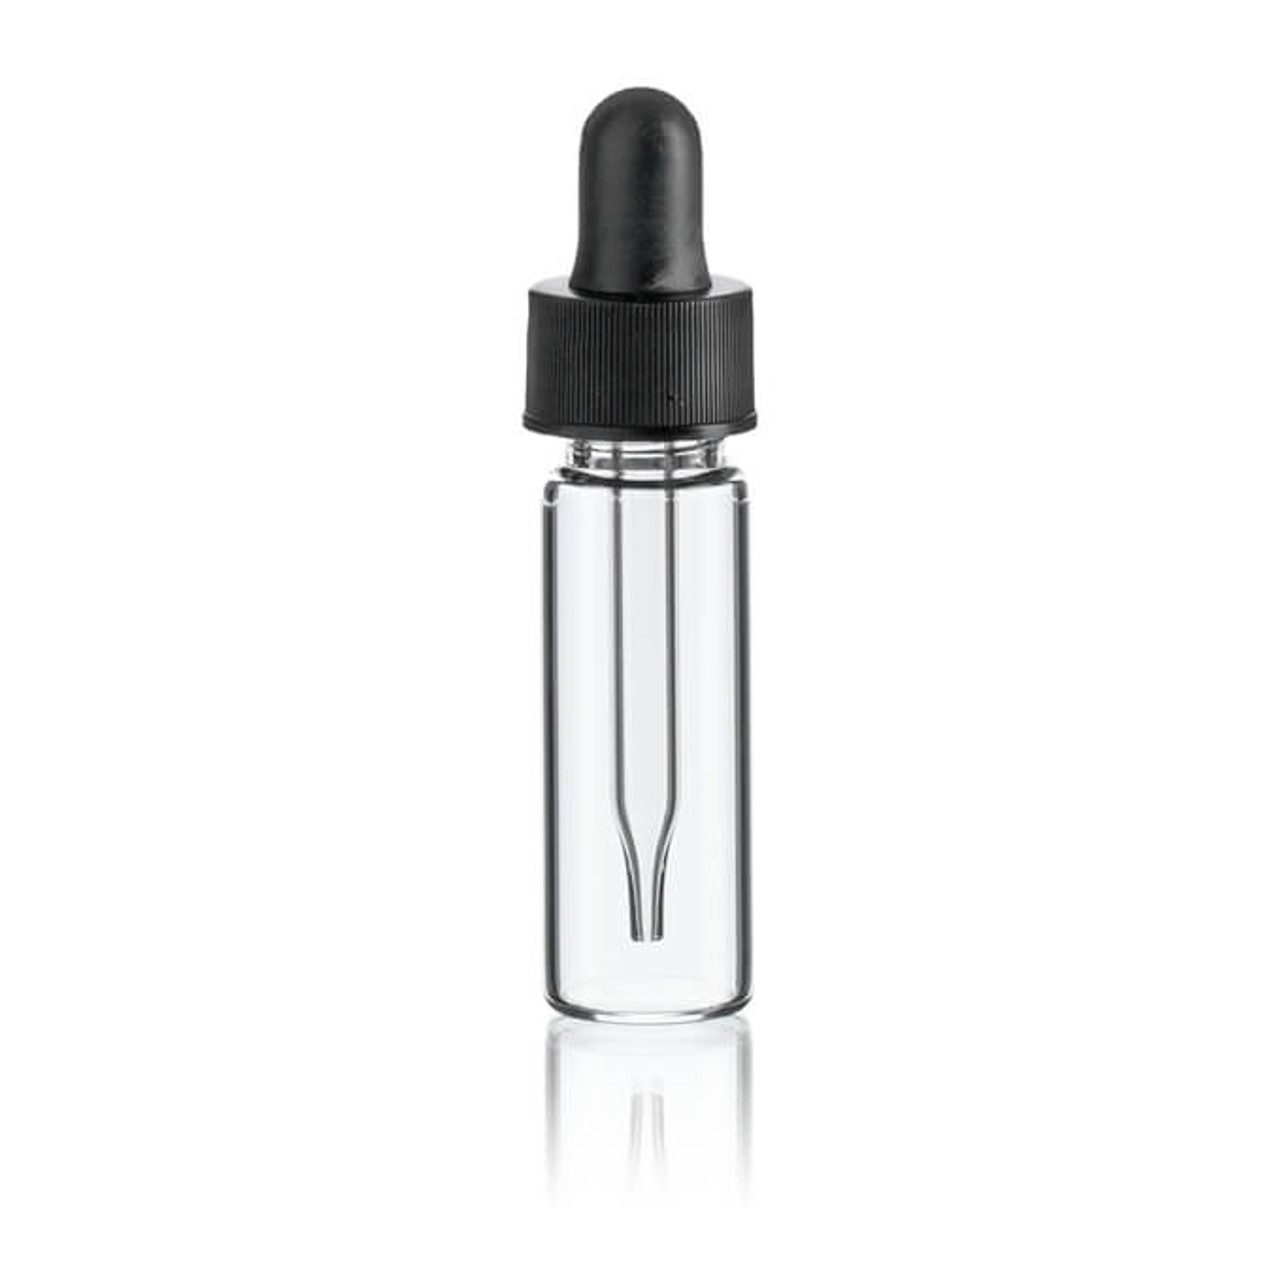 1 dram clear glass vials with dropper